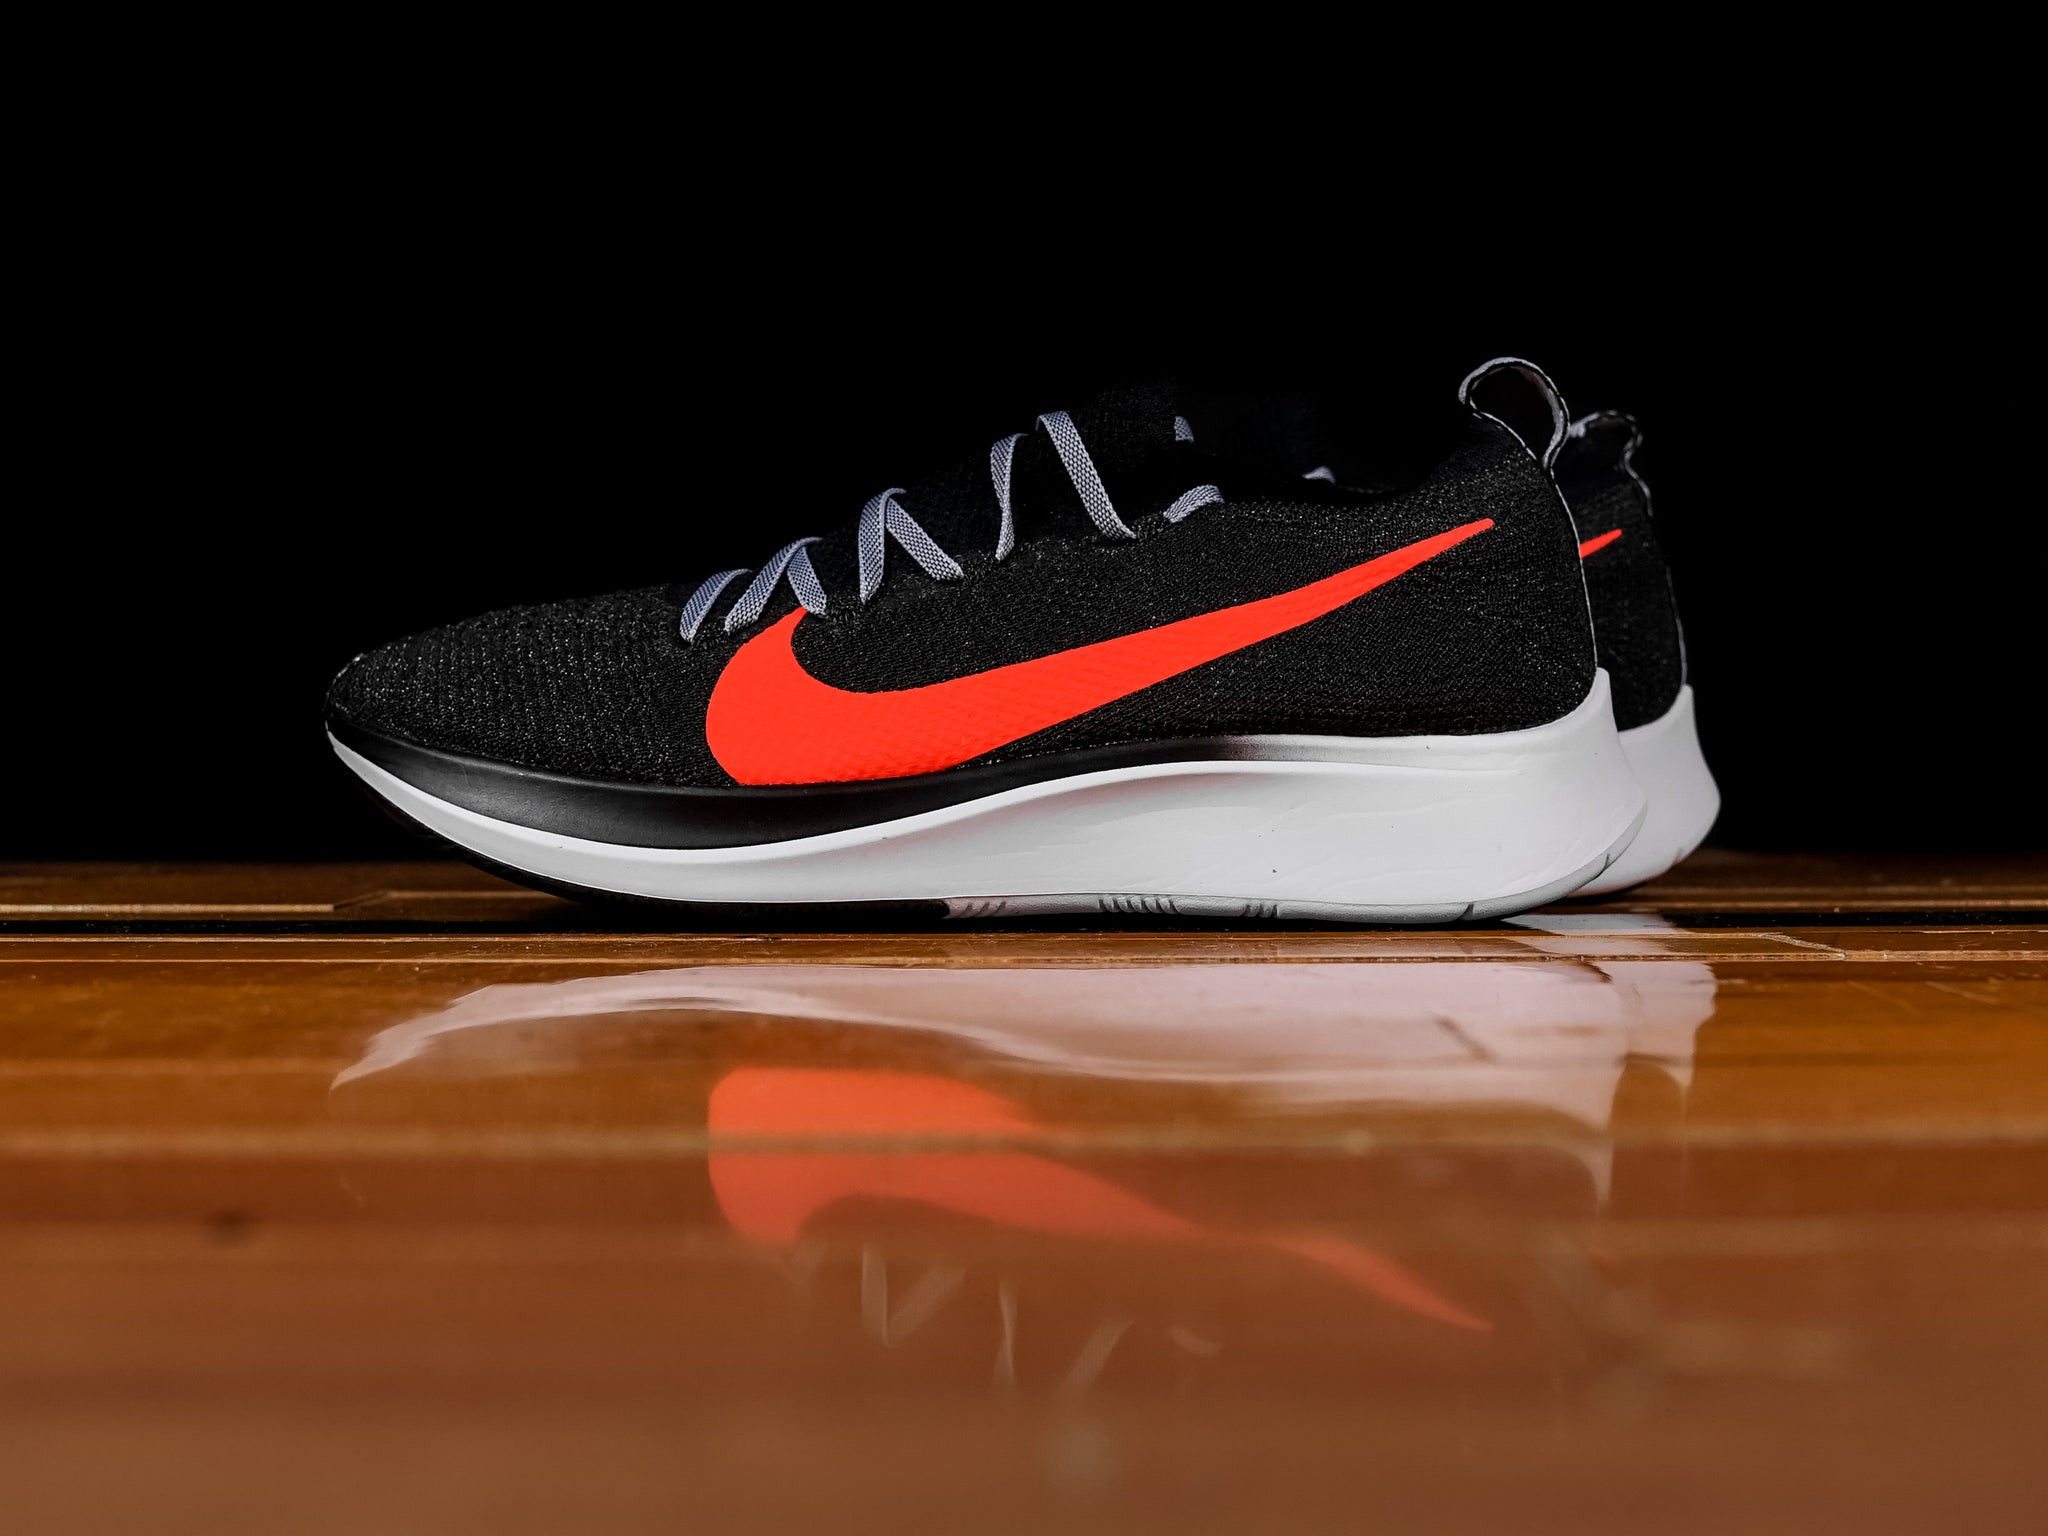 plus récent a43fe 90a27 Men's Nike Zoom Fly Flyknit 'Bright Crimson' [AR4561-005]